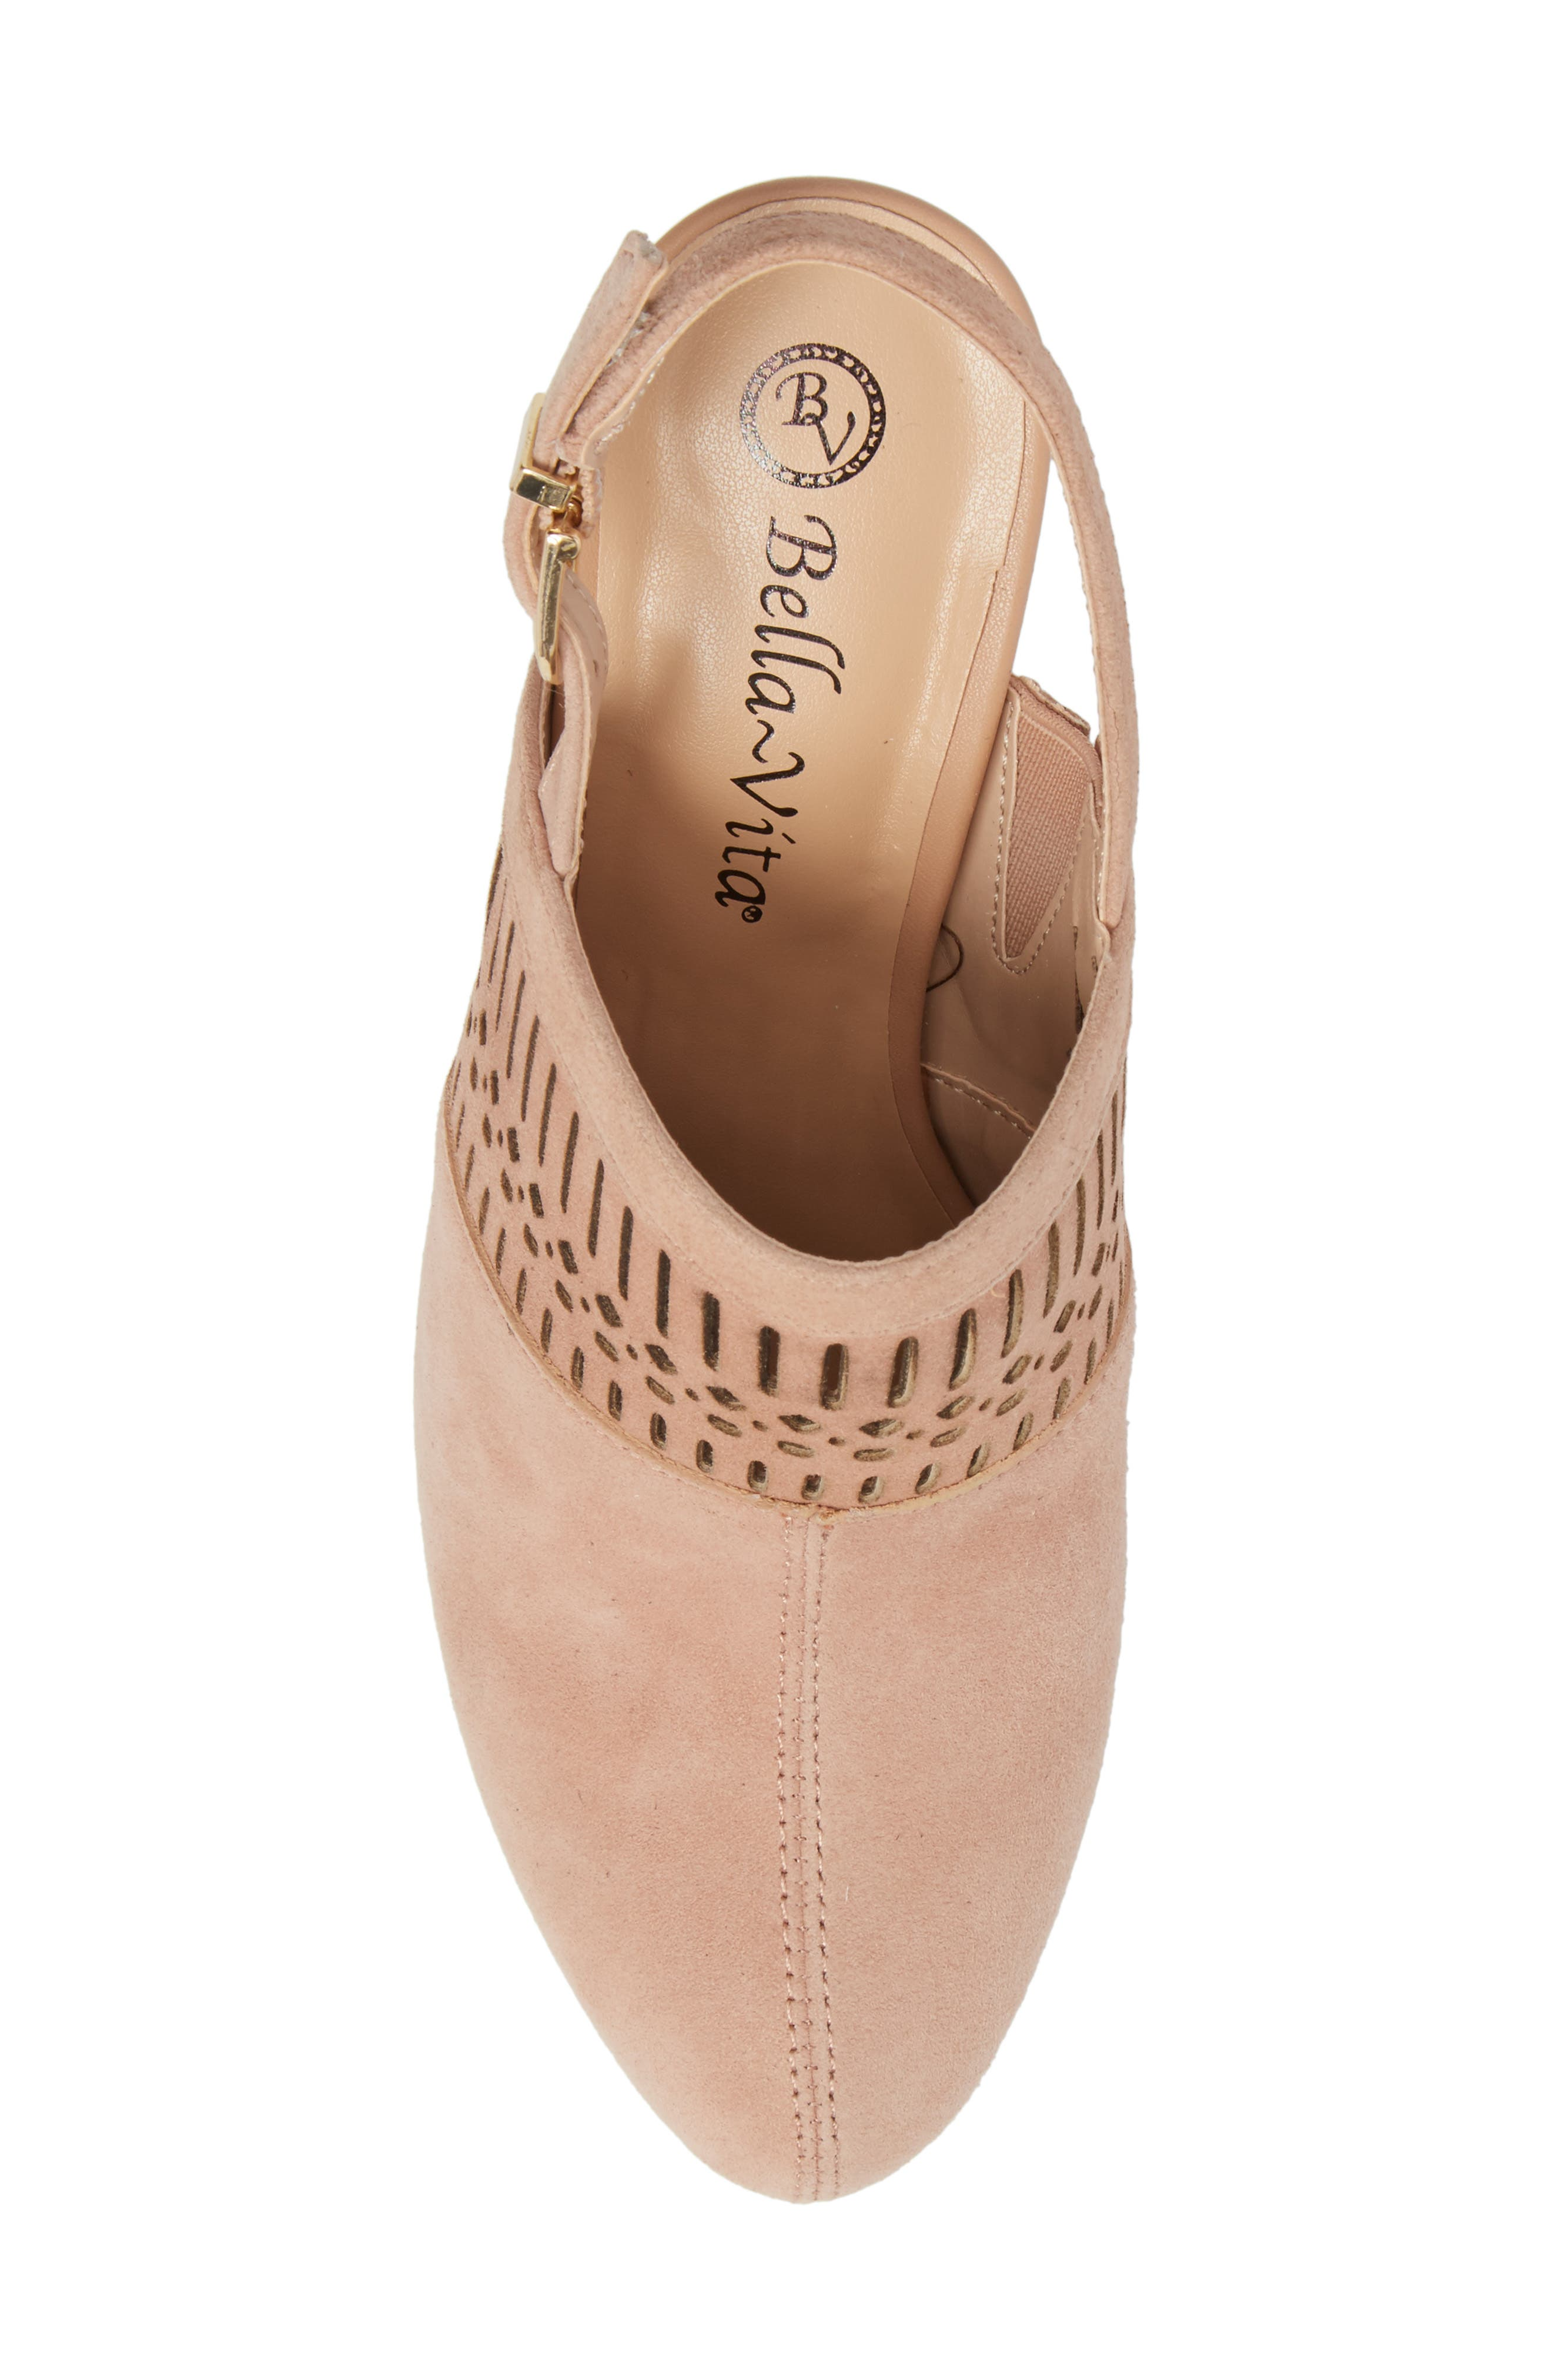 Nox Slingback Perforated Pump,                             Alternate thumbnail 5, color,                             Blush Suede